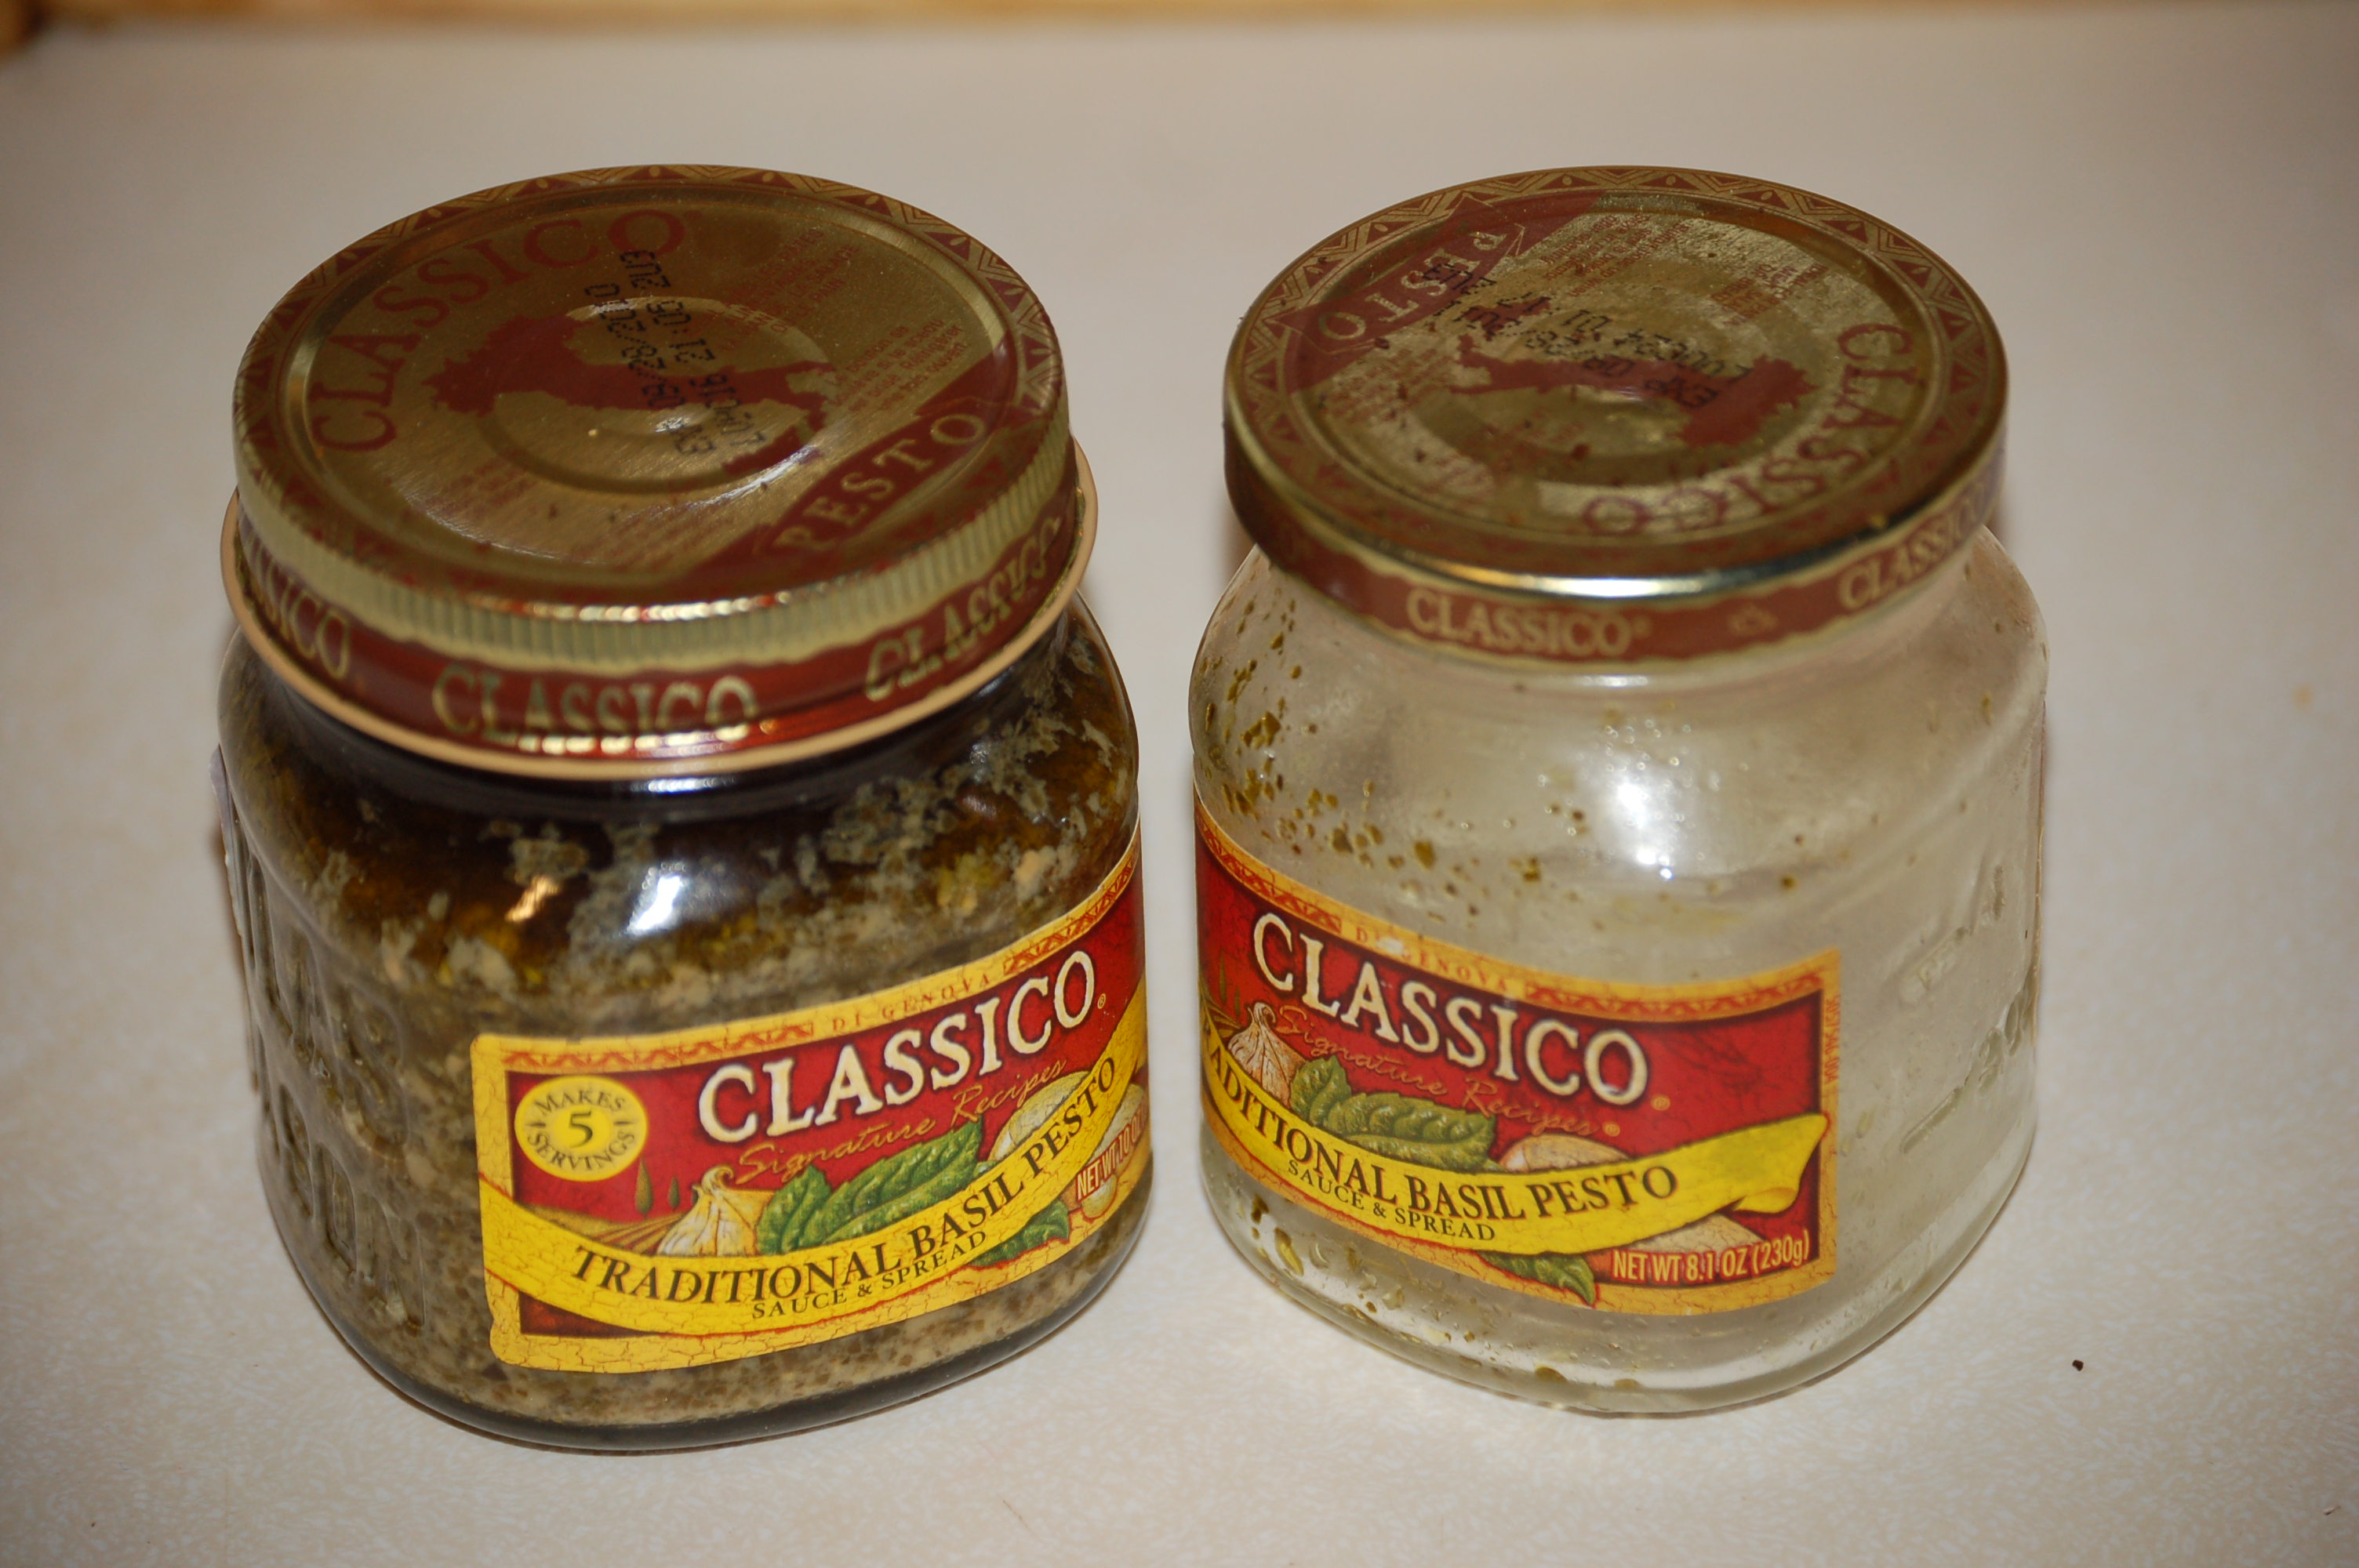 Honey, They Shrunk The Pesto! | Musings from the Chiefio